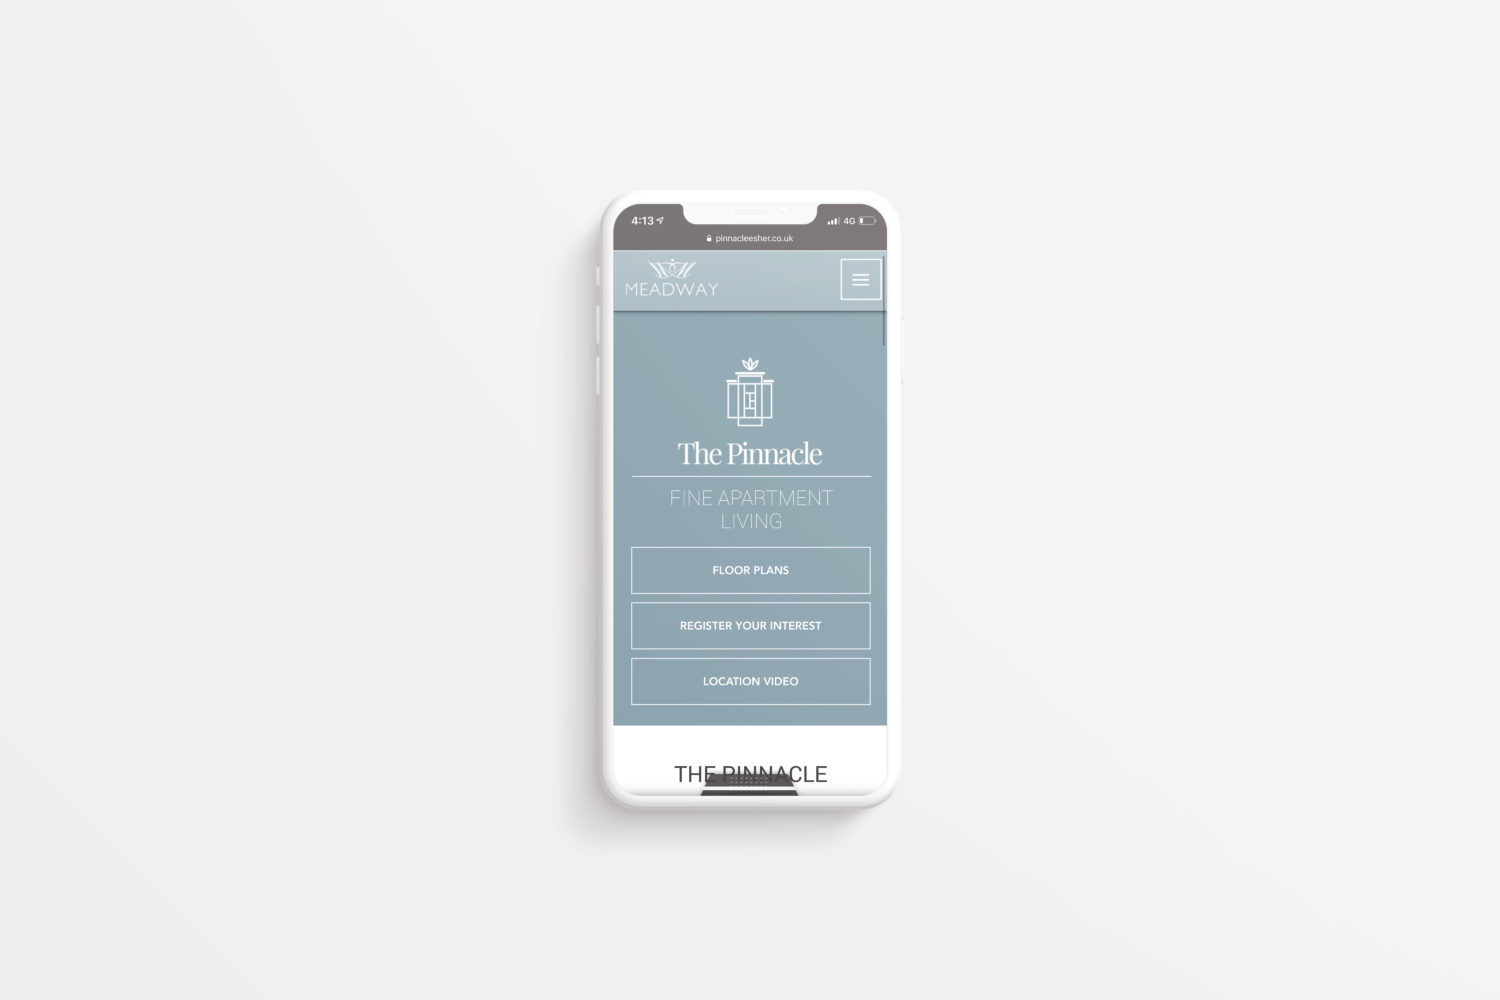 Screenshot of the Pinnacle website on a mobile phone device